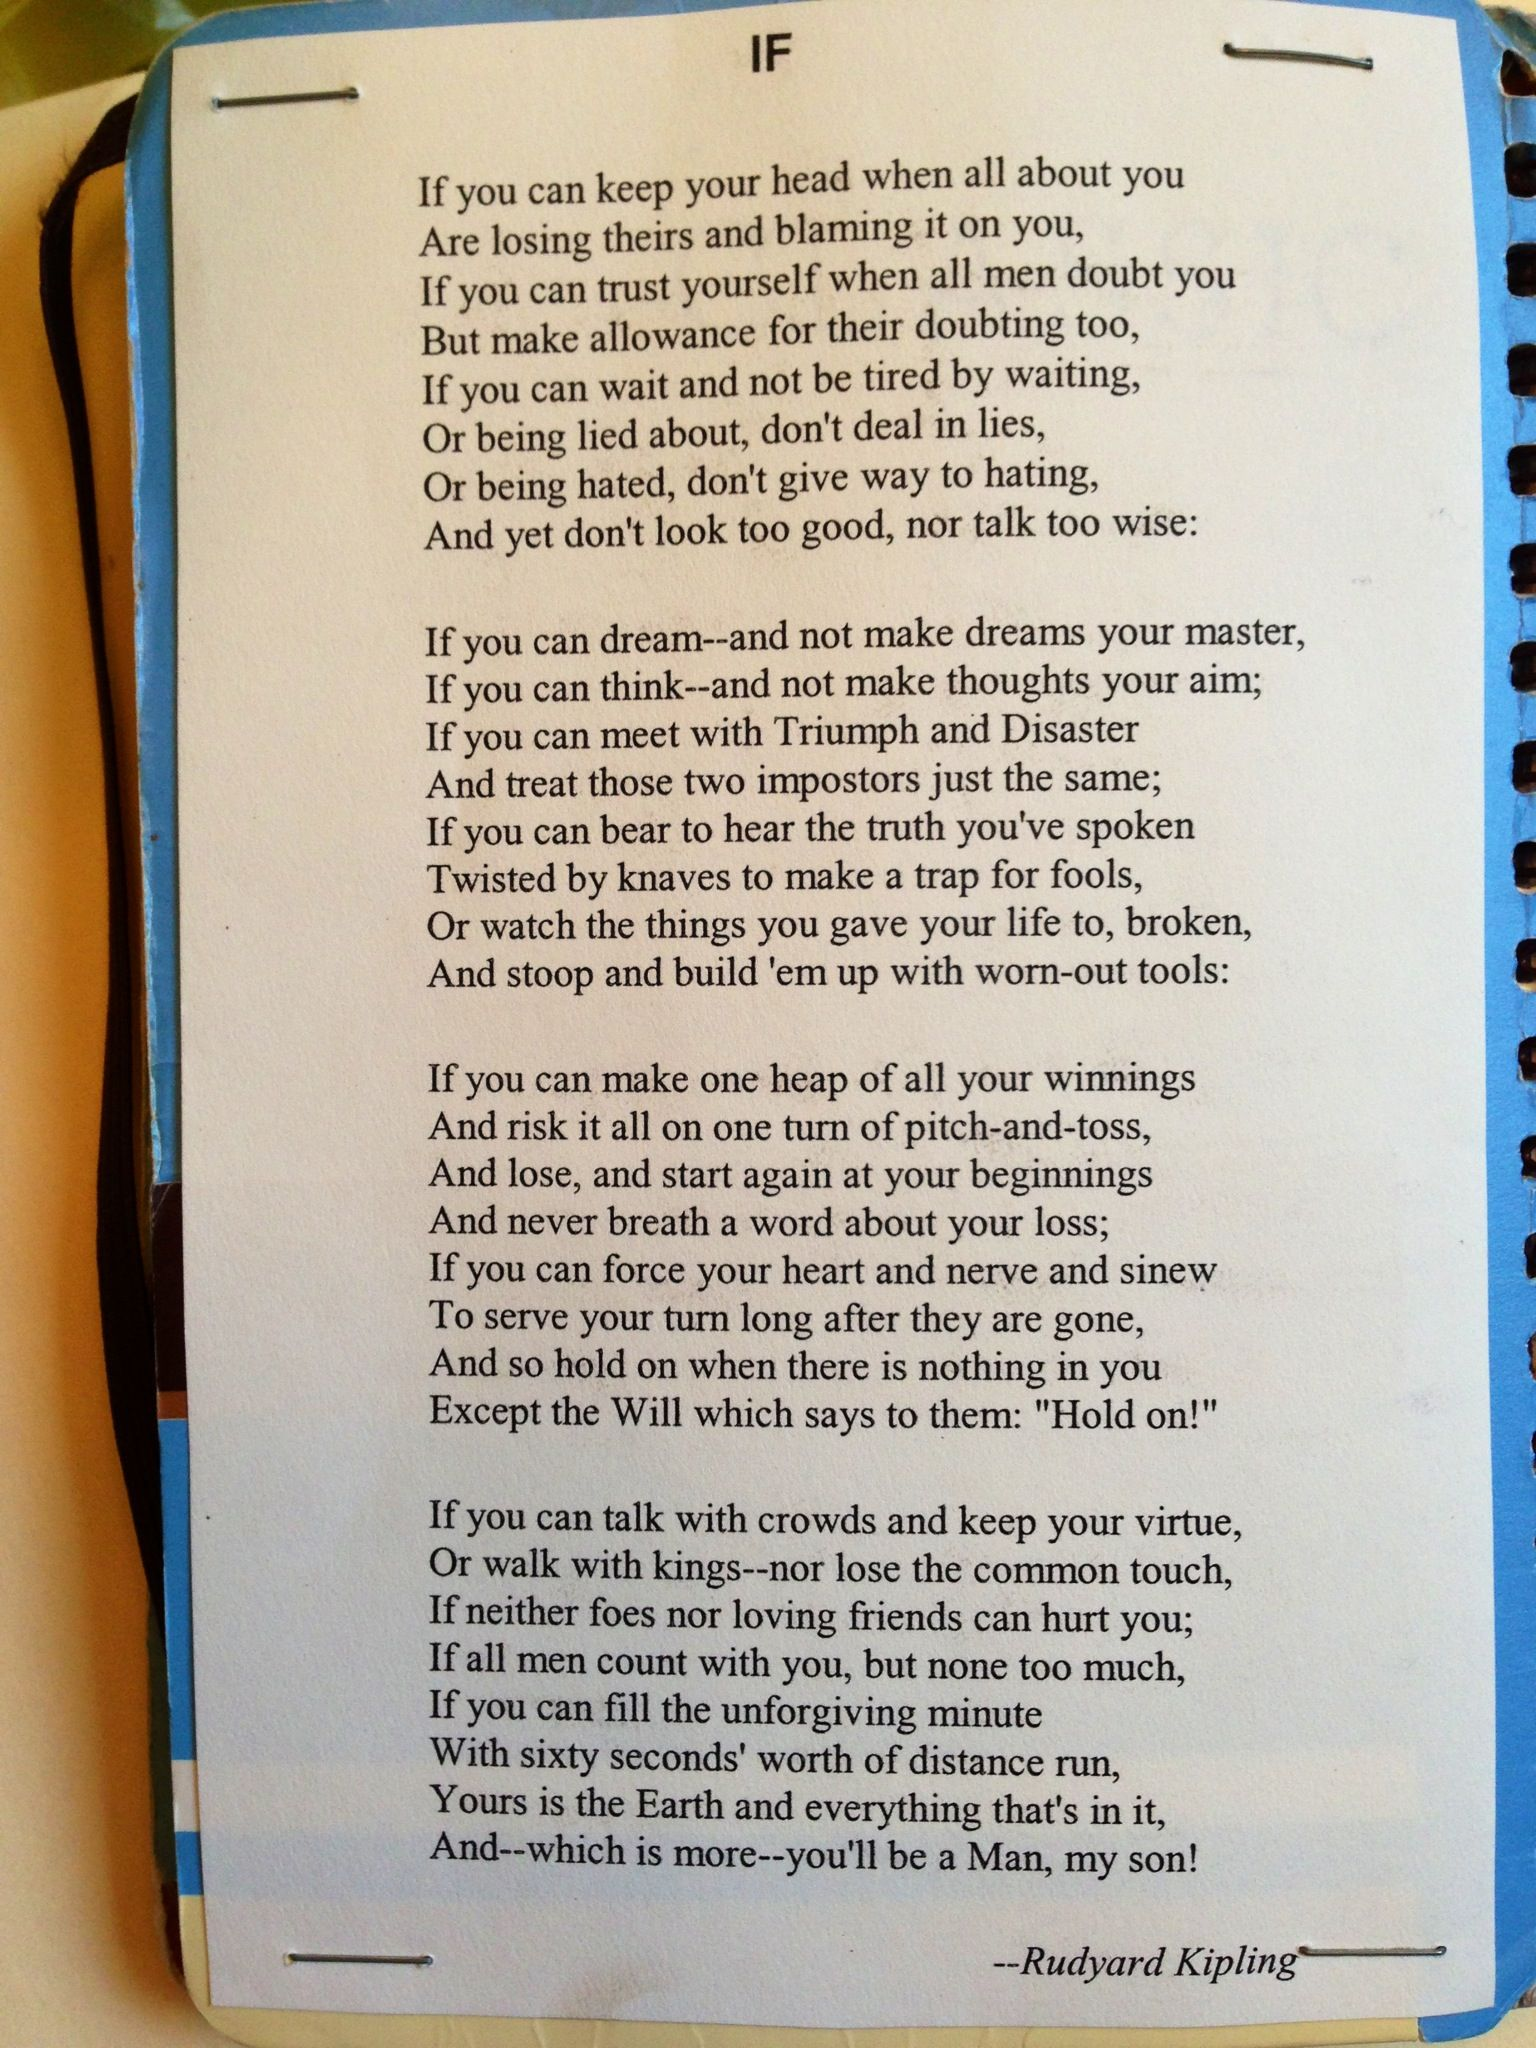 Most Funny Poems Ever - Year of Clean Water